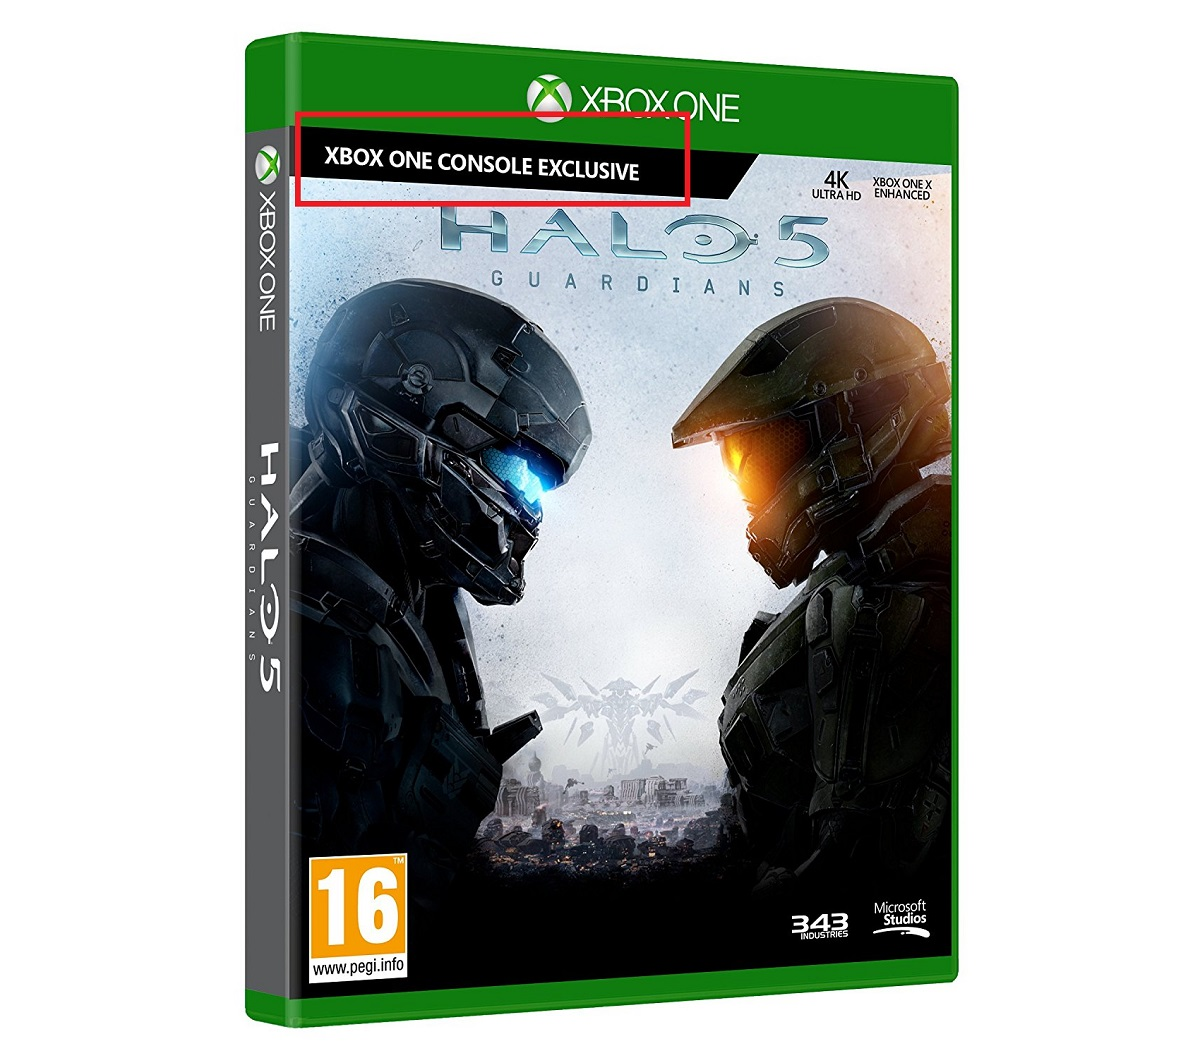 Box Art Once Again Suggests Halo 5: Guardians Is Coming To